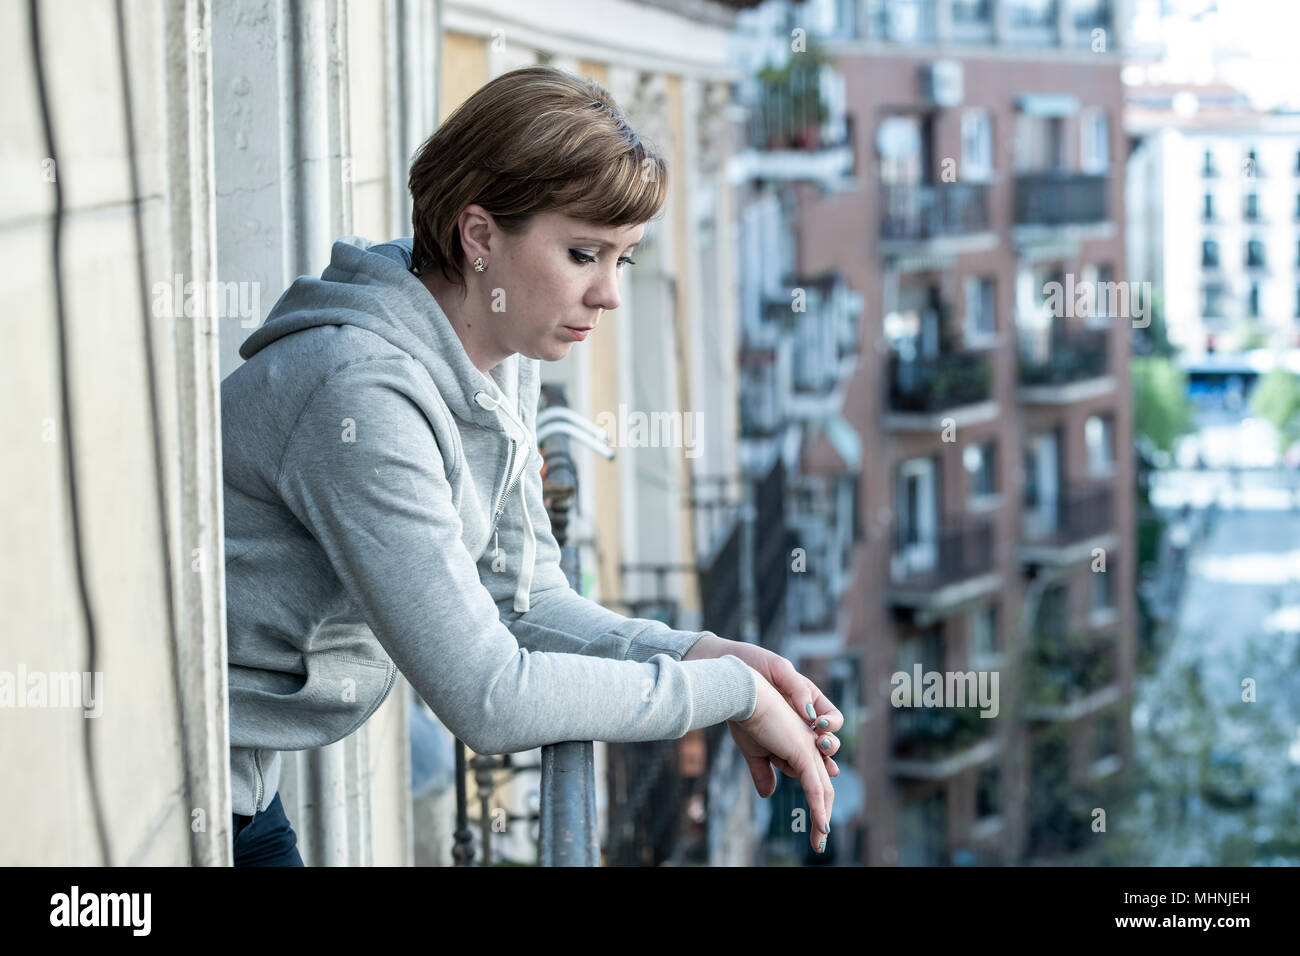 young beautiful, unhappy depressed lonely woman staring hopeless and worried on the balcony at home. having feelings of failure, dissatisfaction. Adul - Stock Image